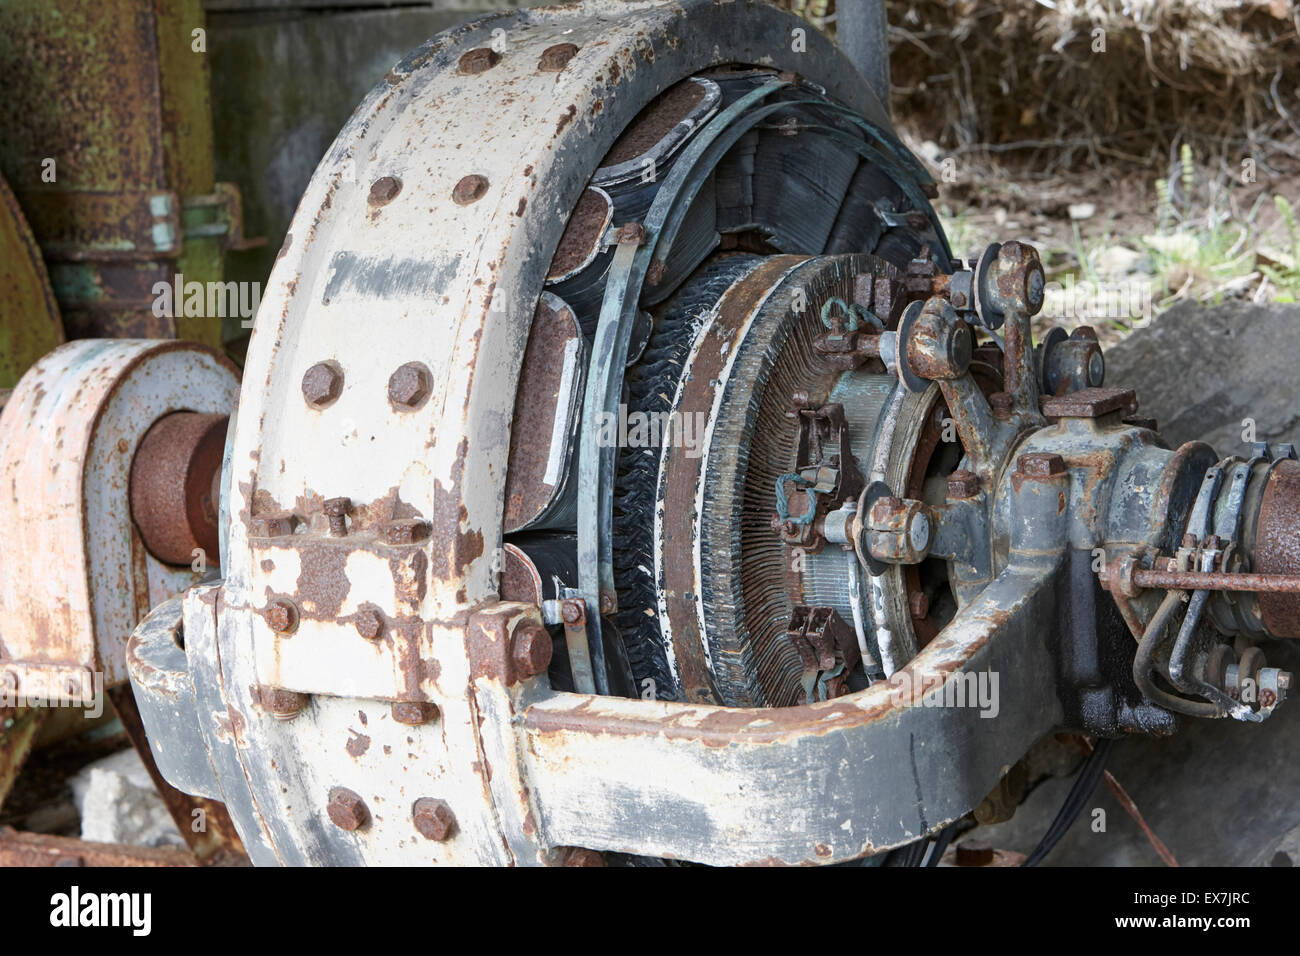 electricity generation equipment in former small hydro electric station in Hlidarendi Hvolsvollur Iceland - Stock Image